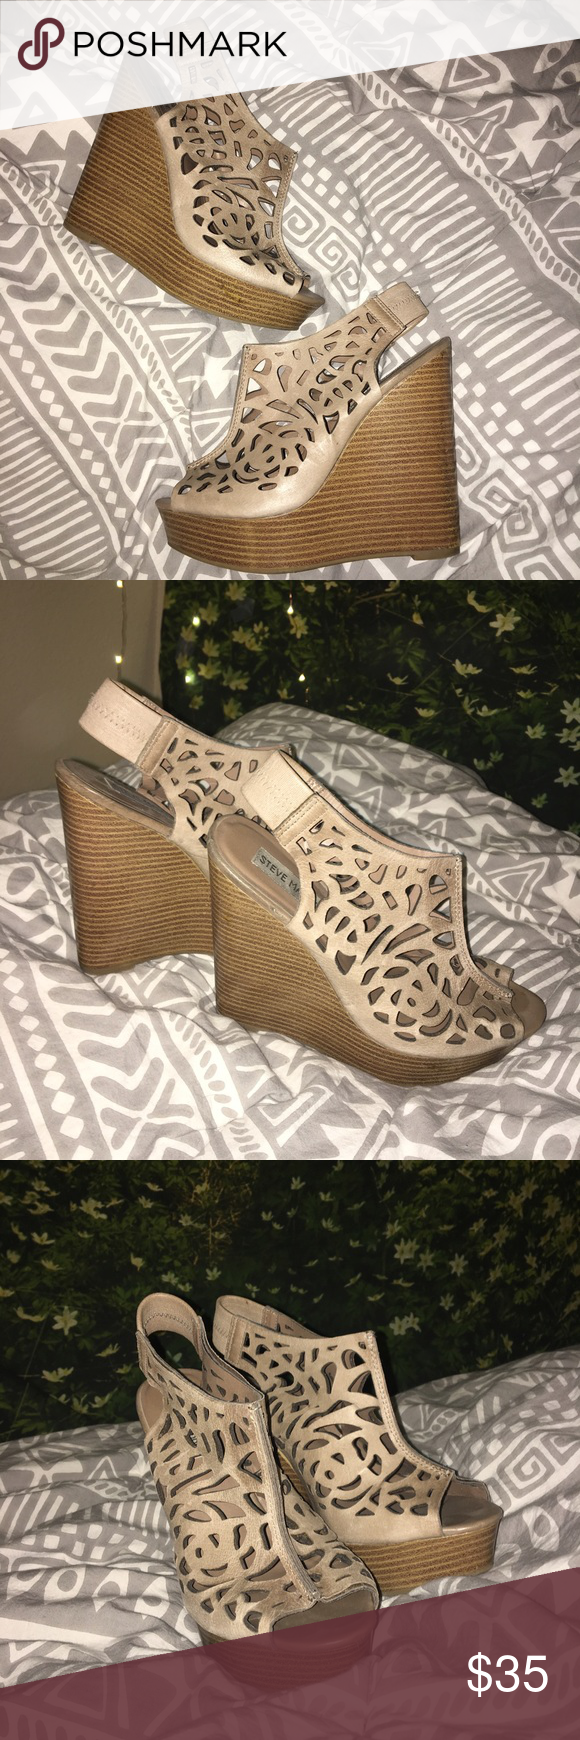 Steve Madden wedges Nude floral cutout wedges. Very good condition! Steve Madden Shoes Wedges